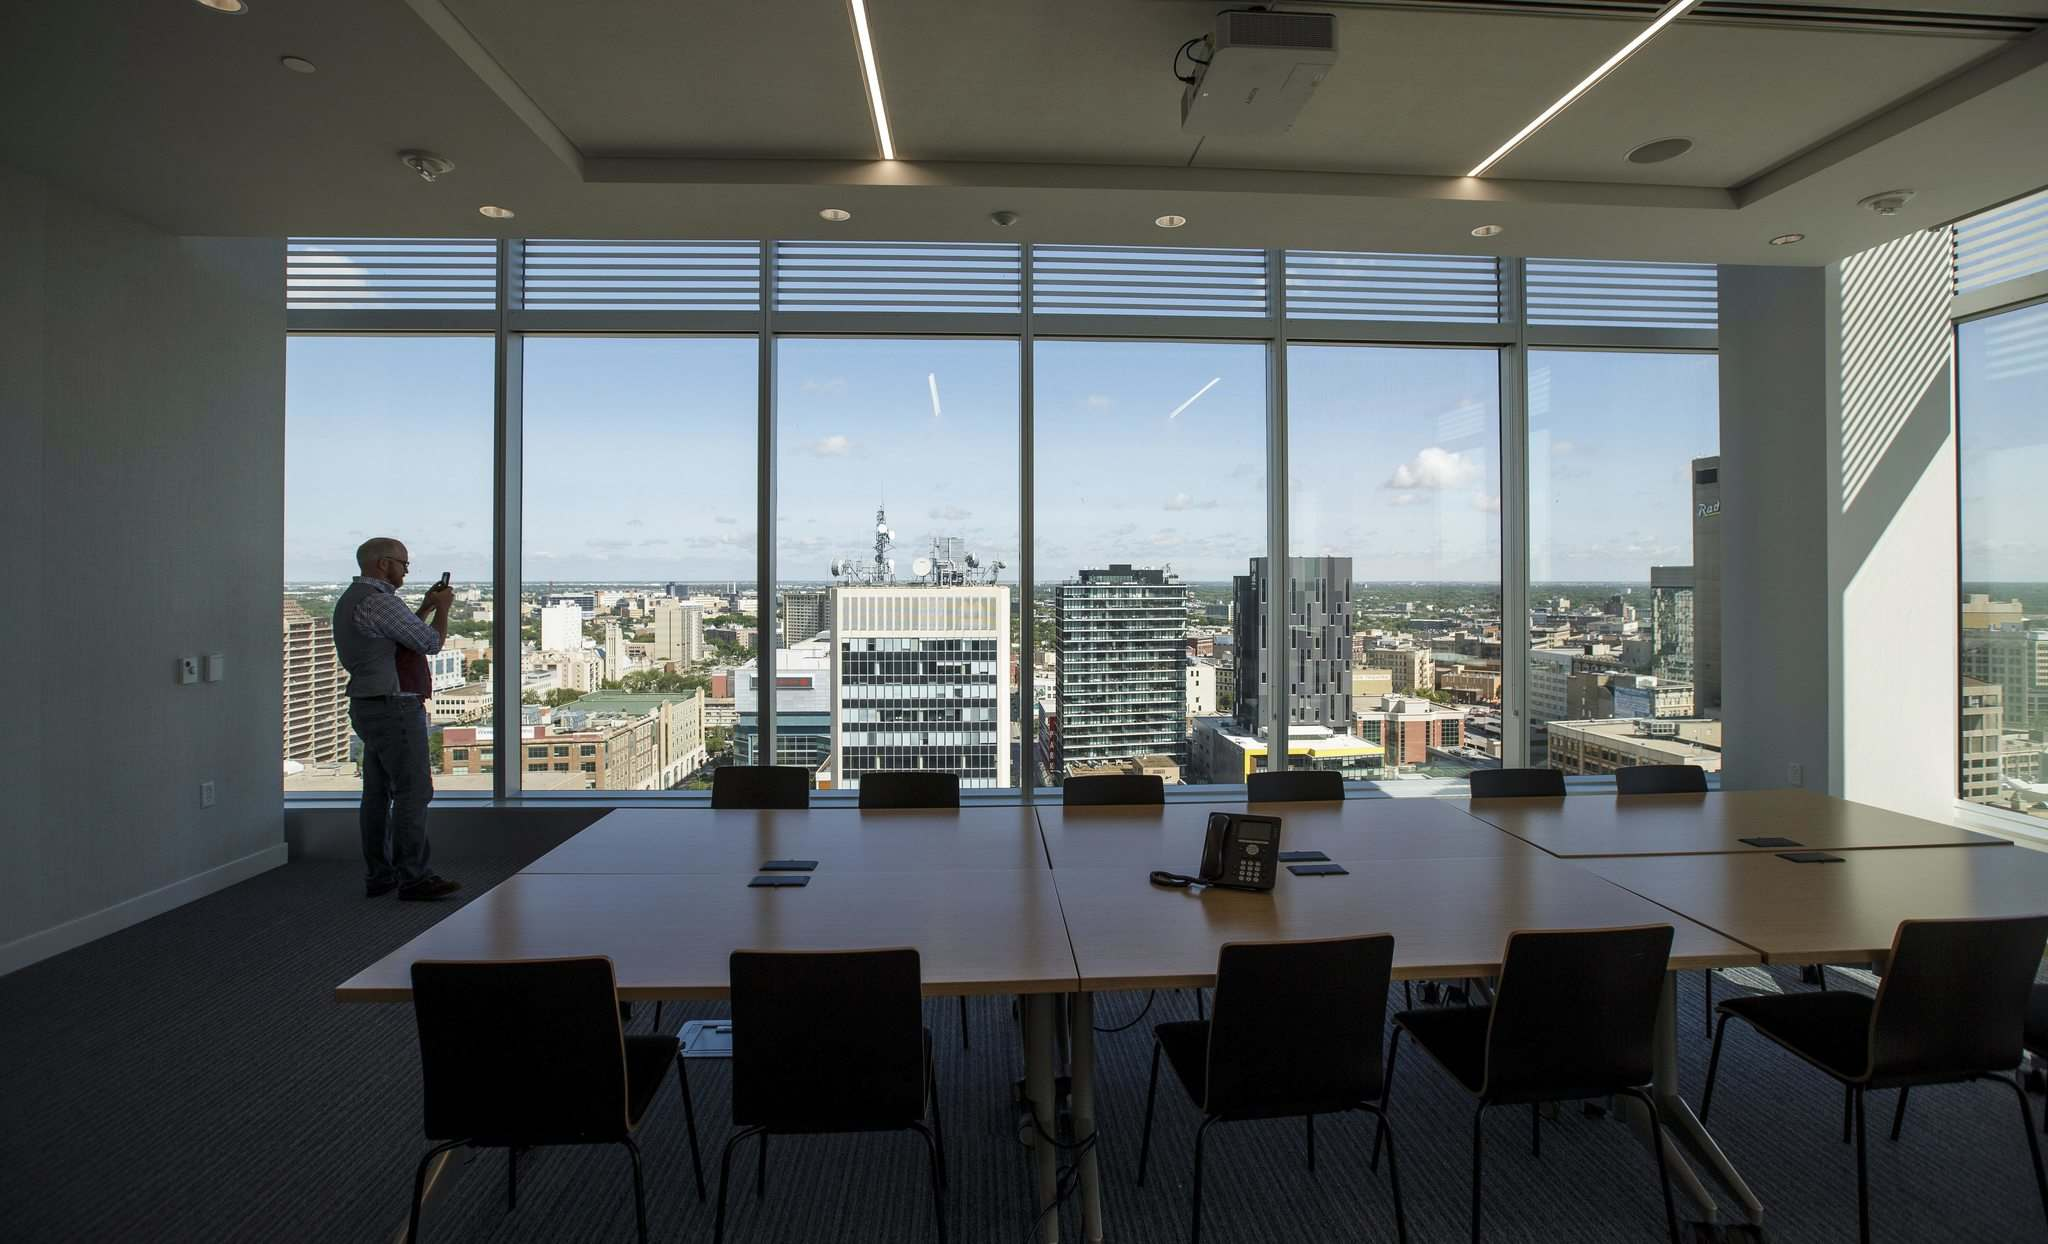 Conference room views. (Mike Deal / Winnipeg Free Press)</p>